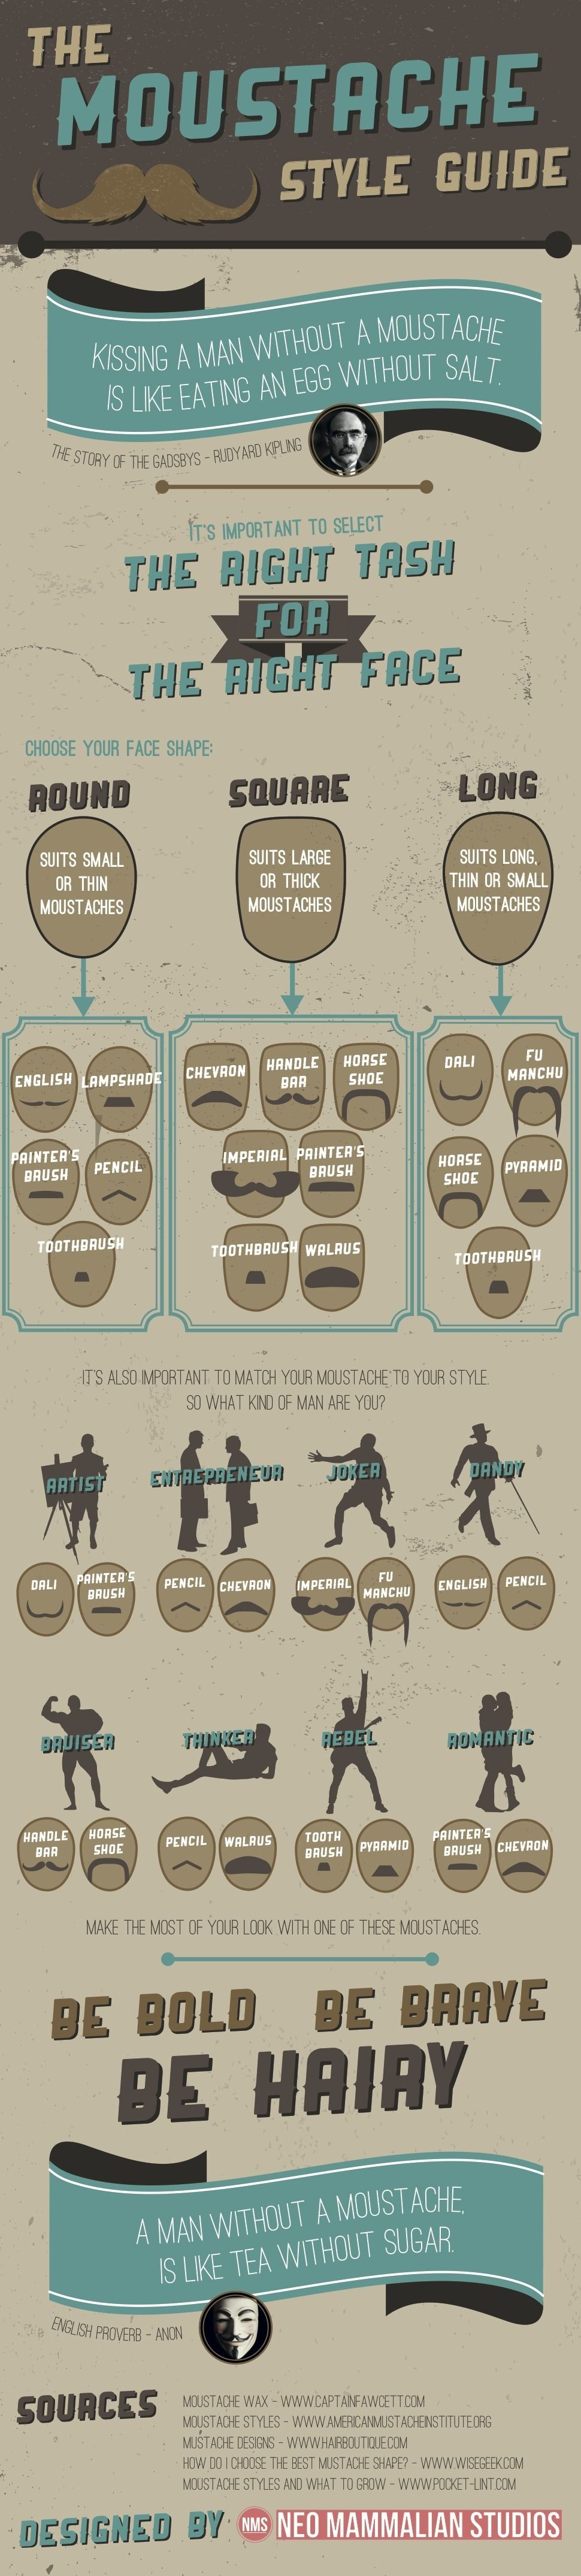 THE MUSTACHE STYLE GUIDE FOR MOVEMBER